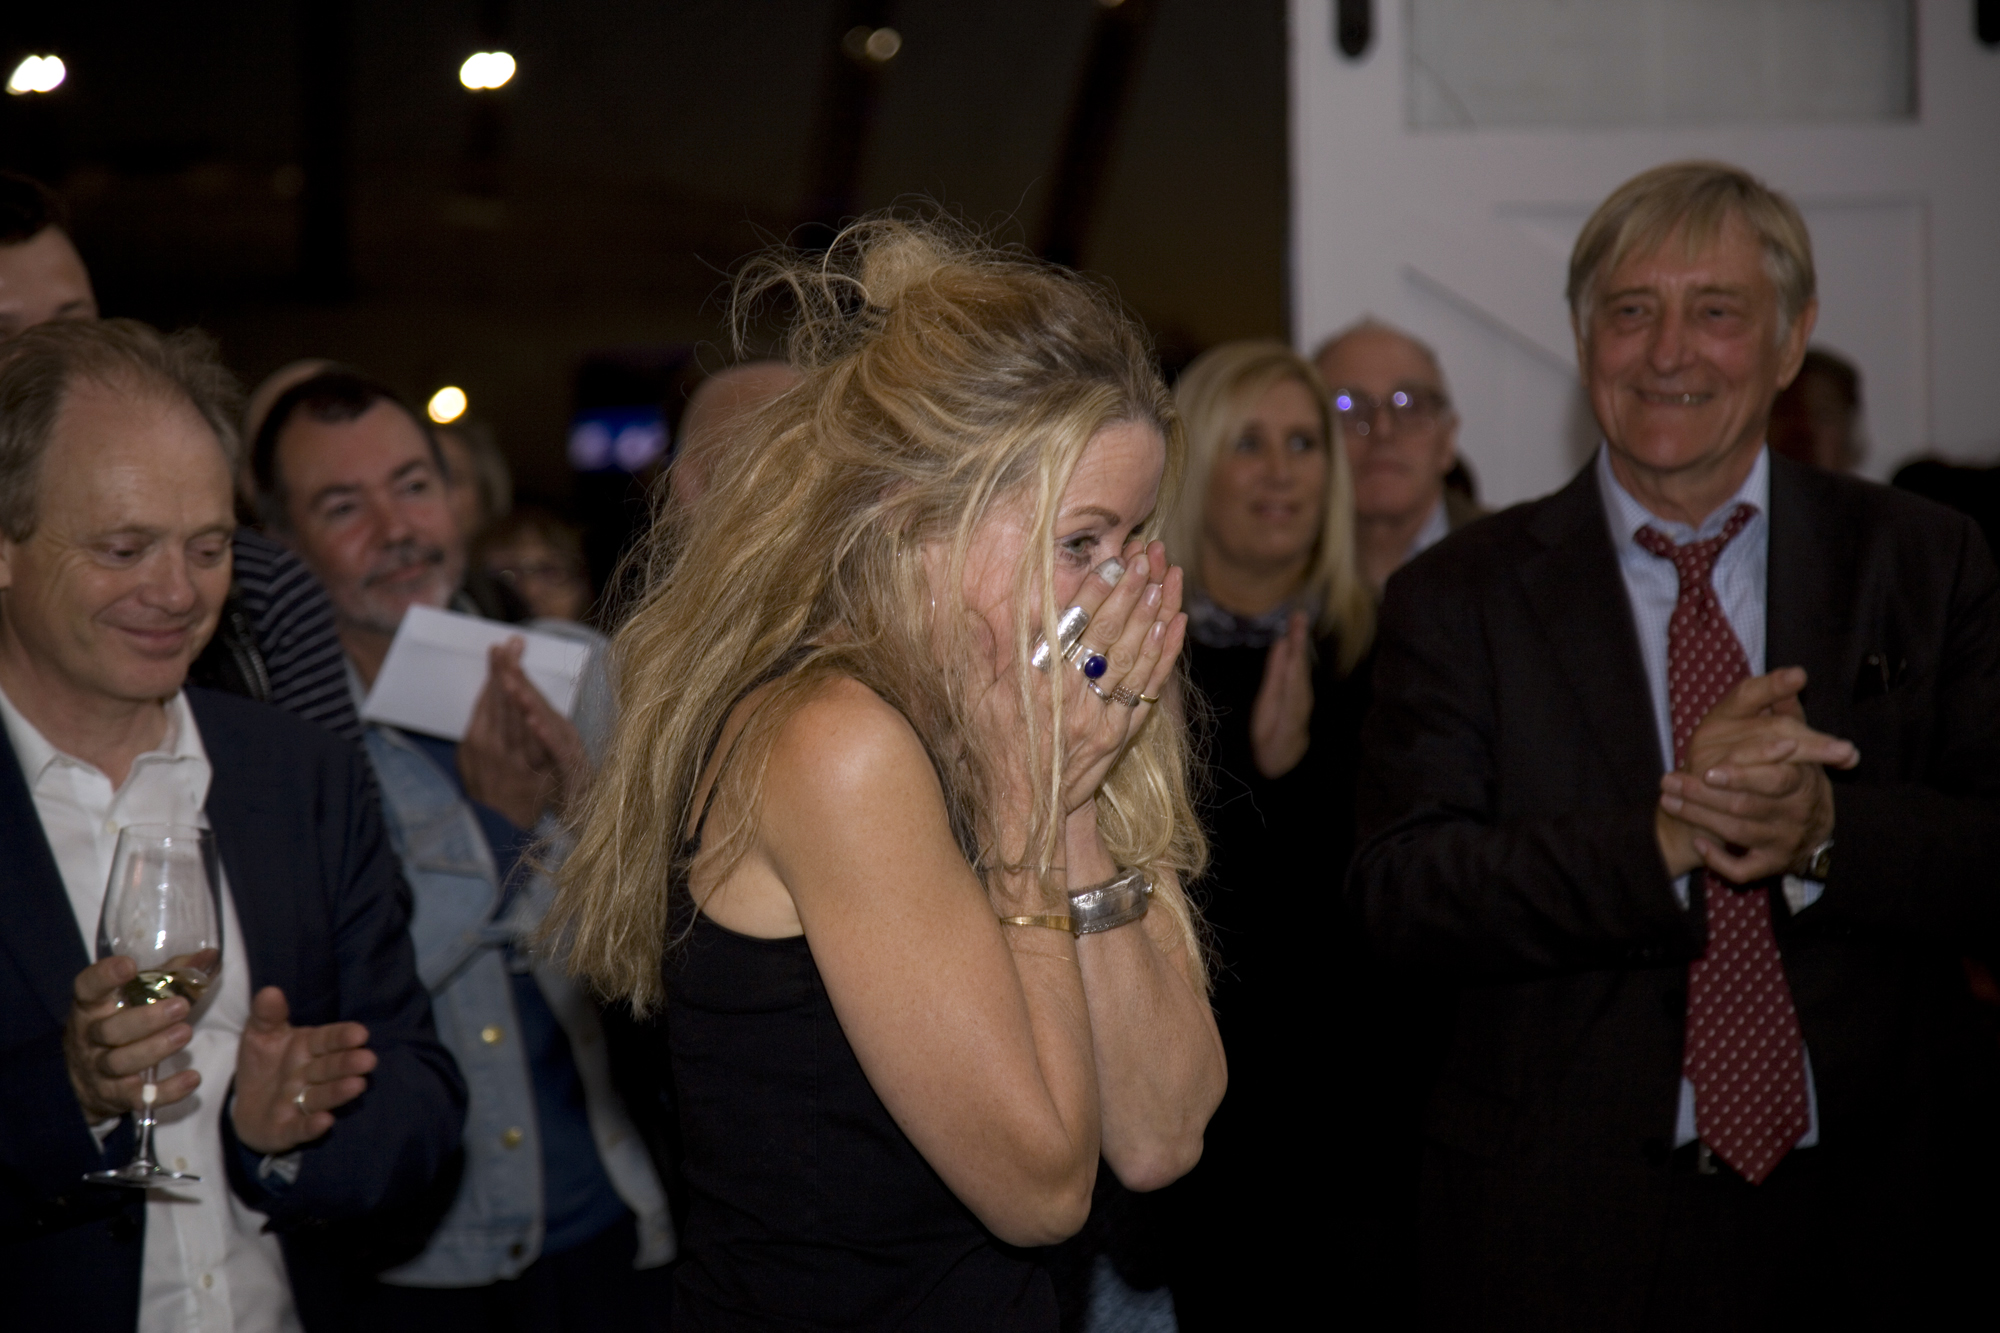 Caroline Burraway the moment it was announced that she had won the Trinity Buoy Wharf Drawing Prize for Eden